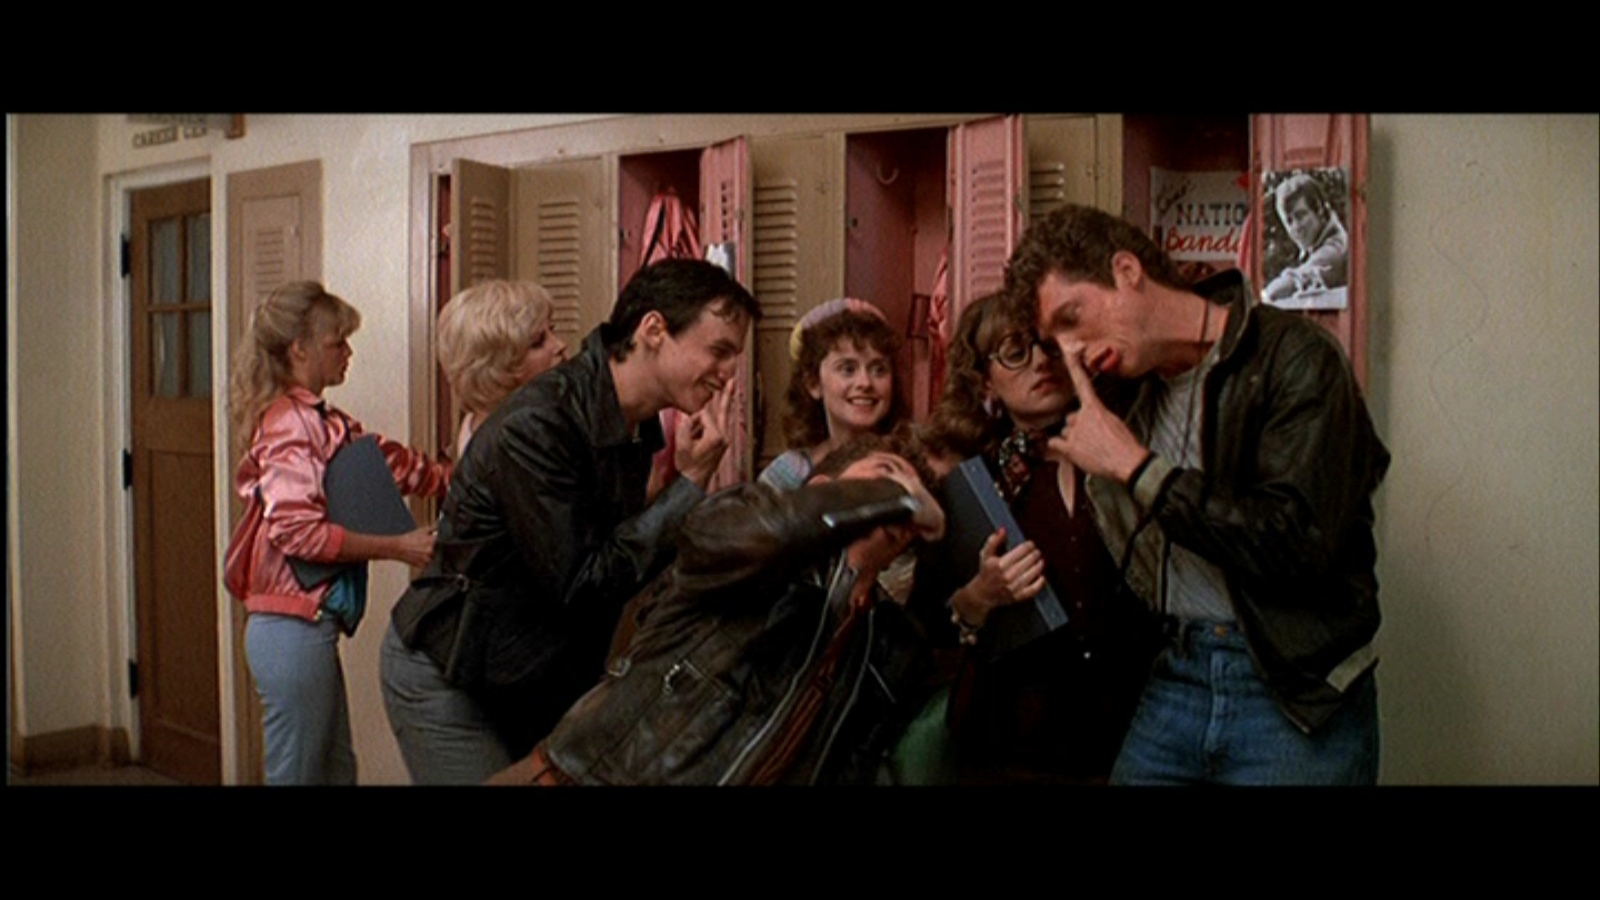 sociology terms grease movie Emily estrada paper #1: youth subcultures the human race is unlike any other species, because we are a combination of diverse forms that are dissimilar in terms of our ethnic demographics, political/religious views, and most importantly our access to opportunities.